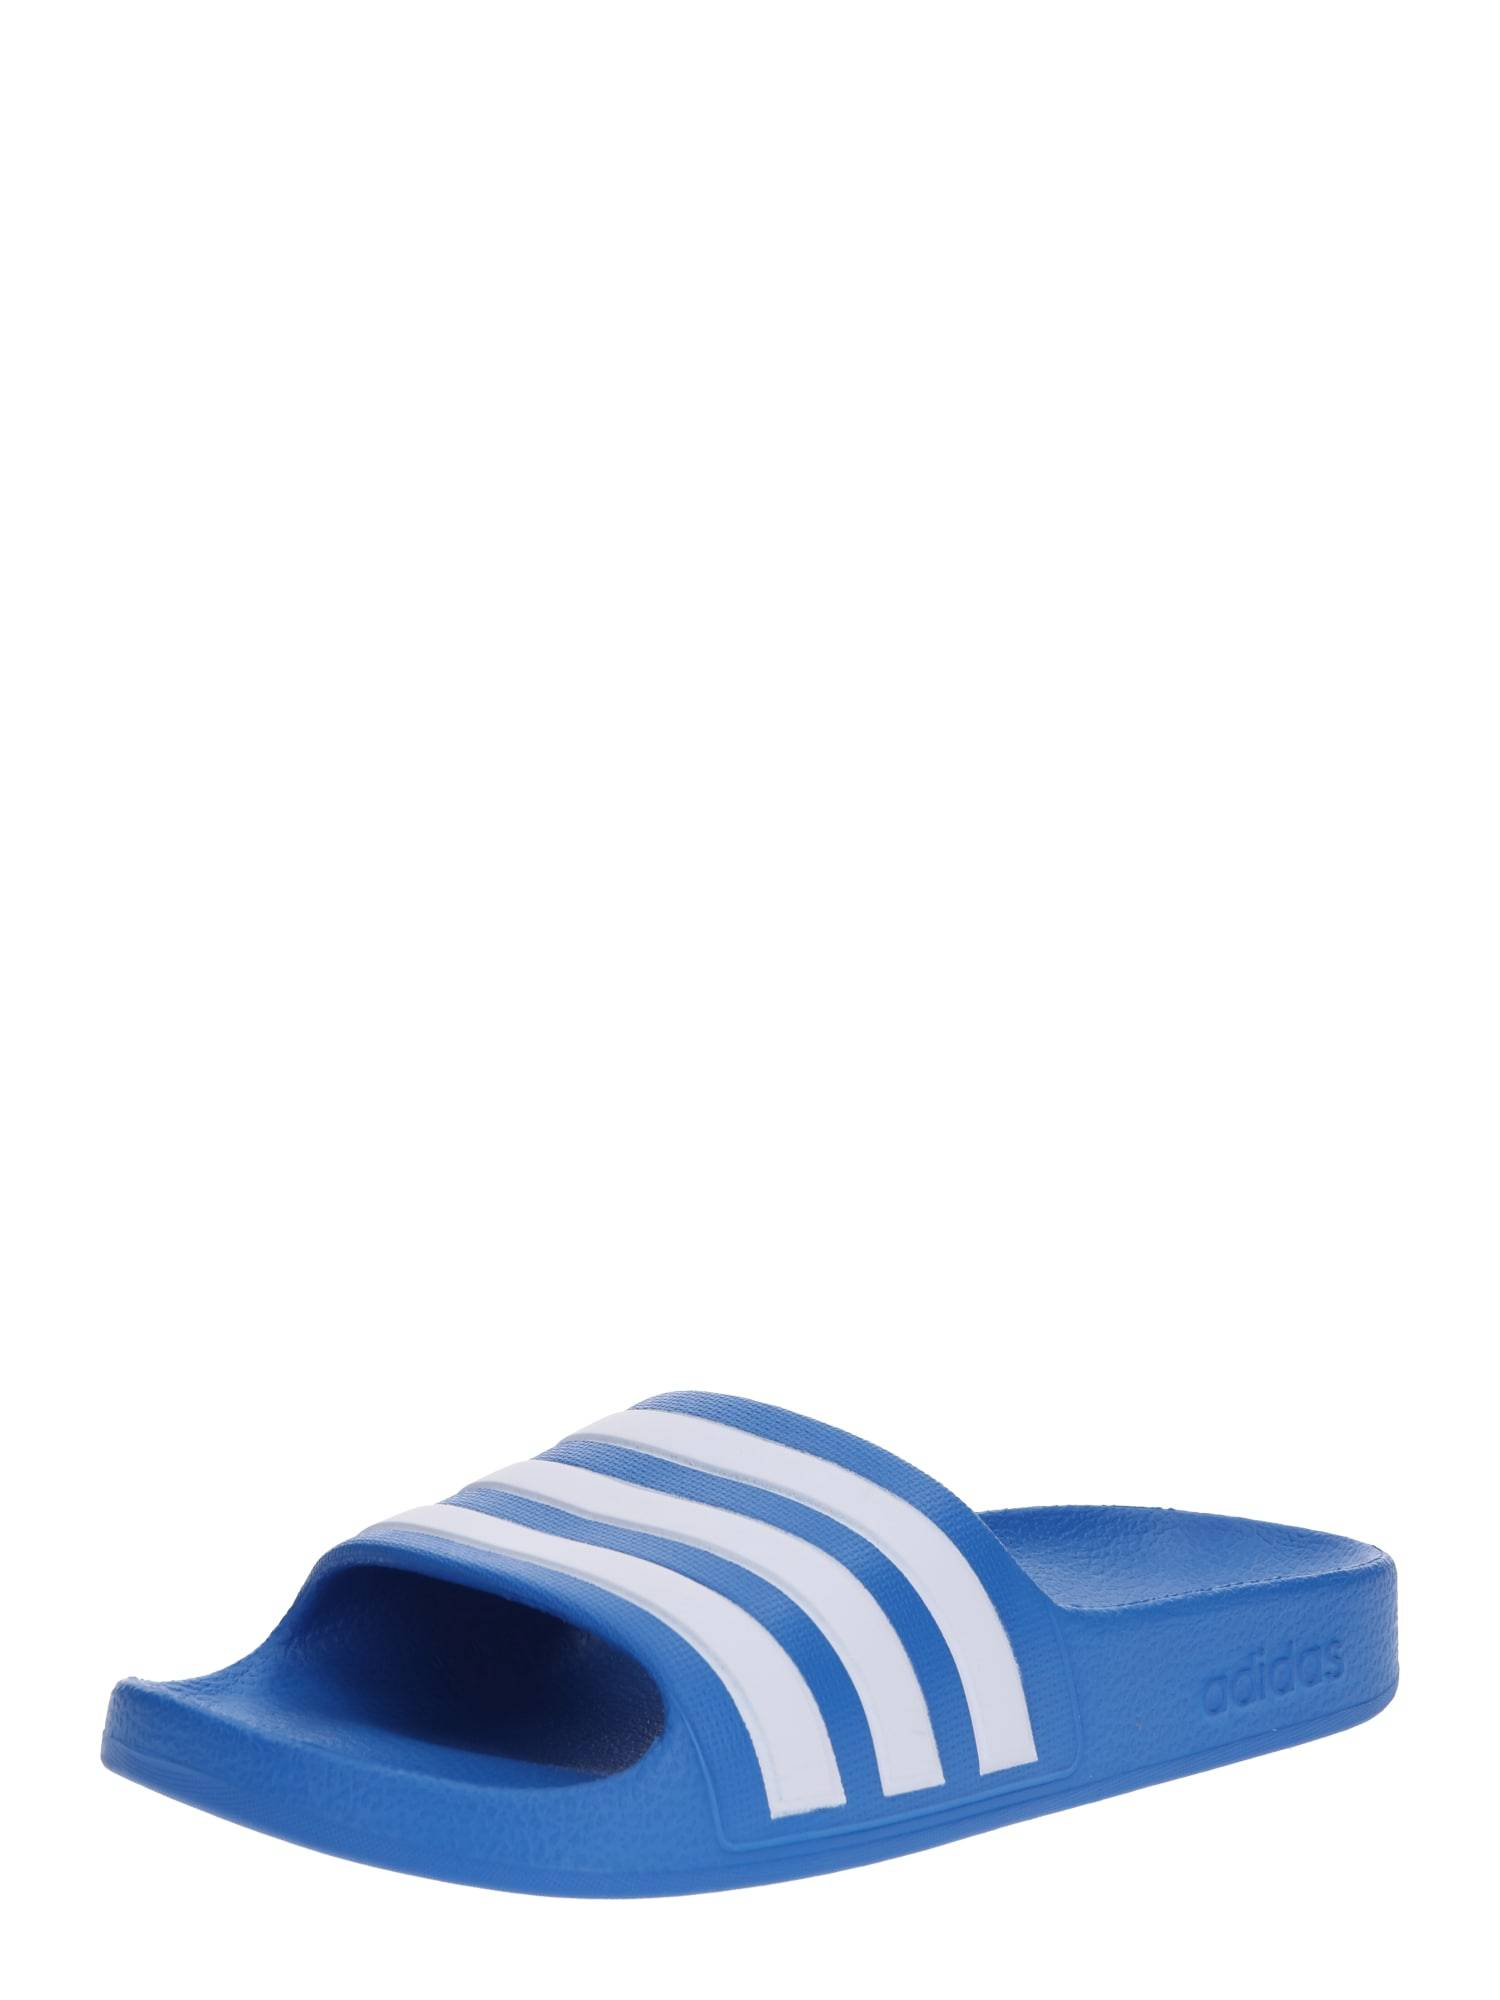 ADIDAS PERFORMANCE Claquettes / Tongs  - Bleu - Taille: 32 - boy